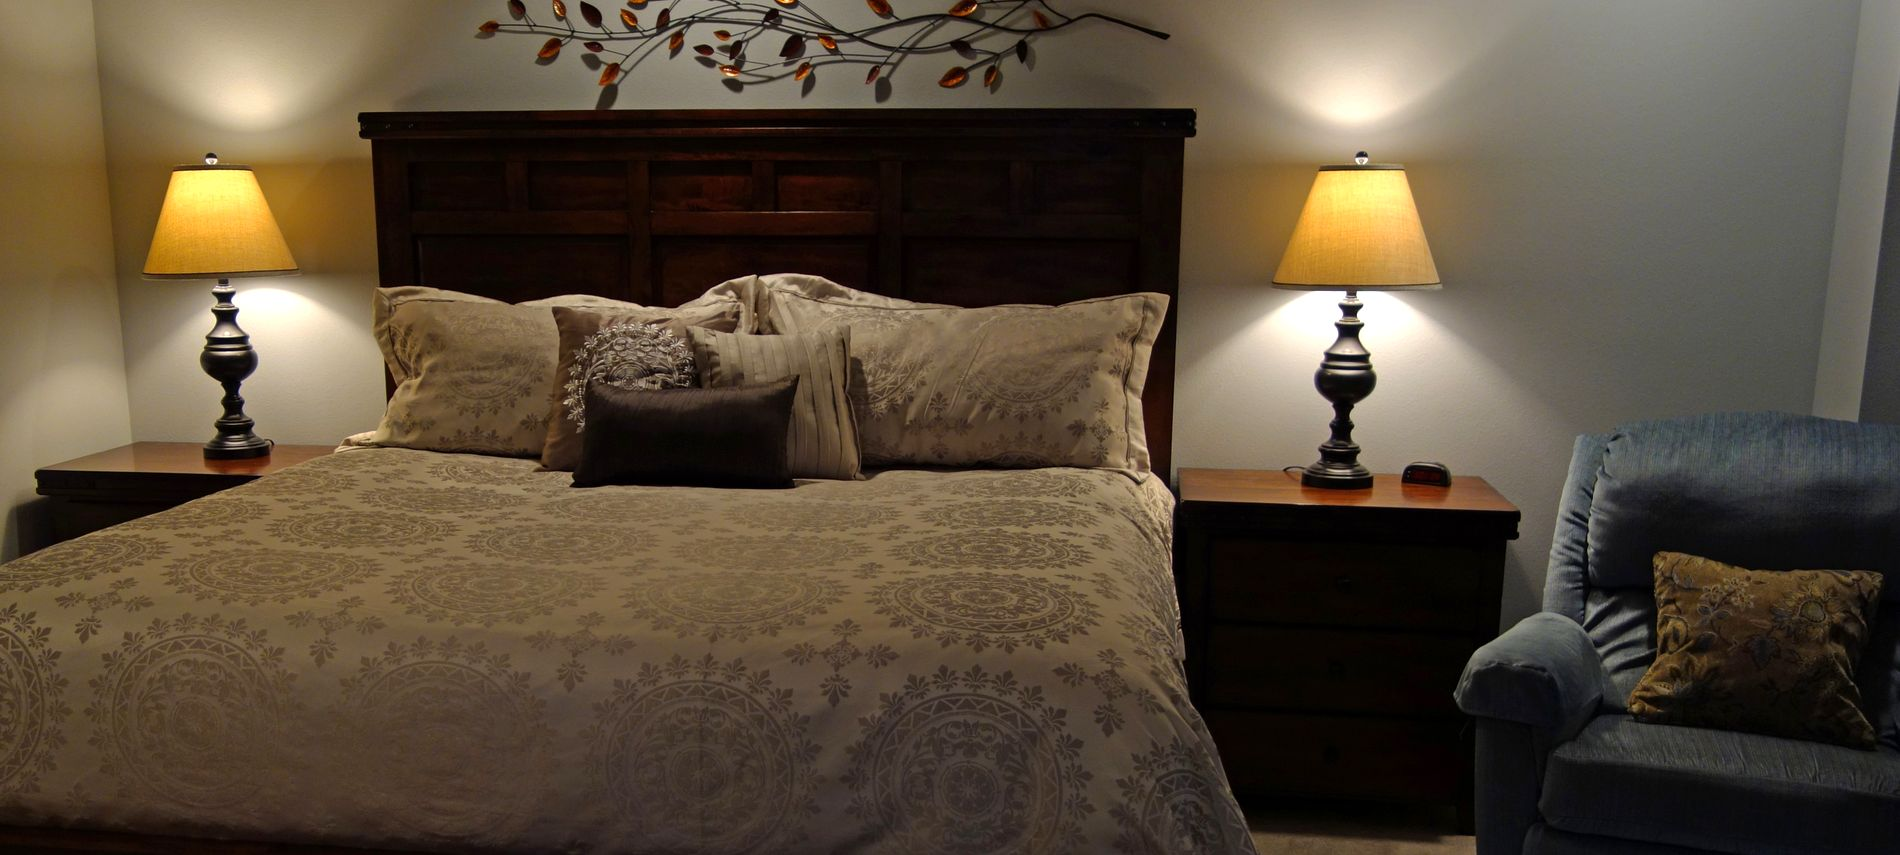 nterior of the room showing light brown linens and dark brown woodwork.